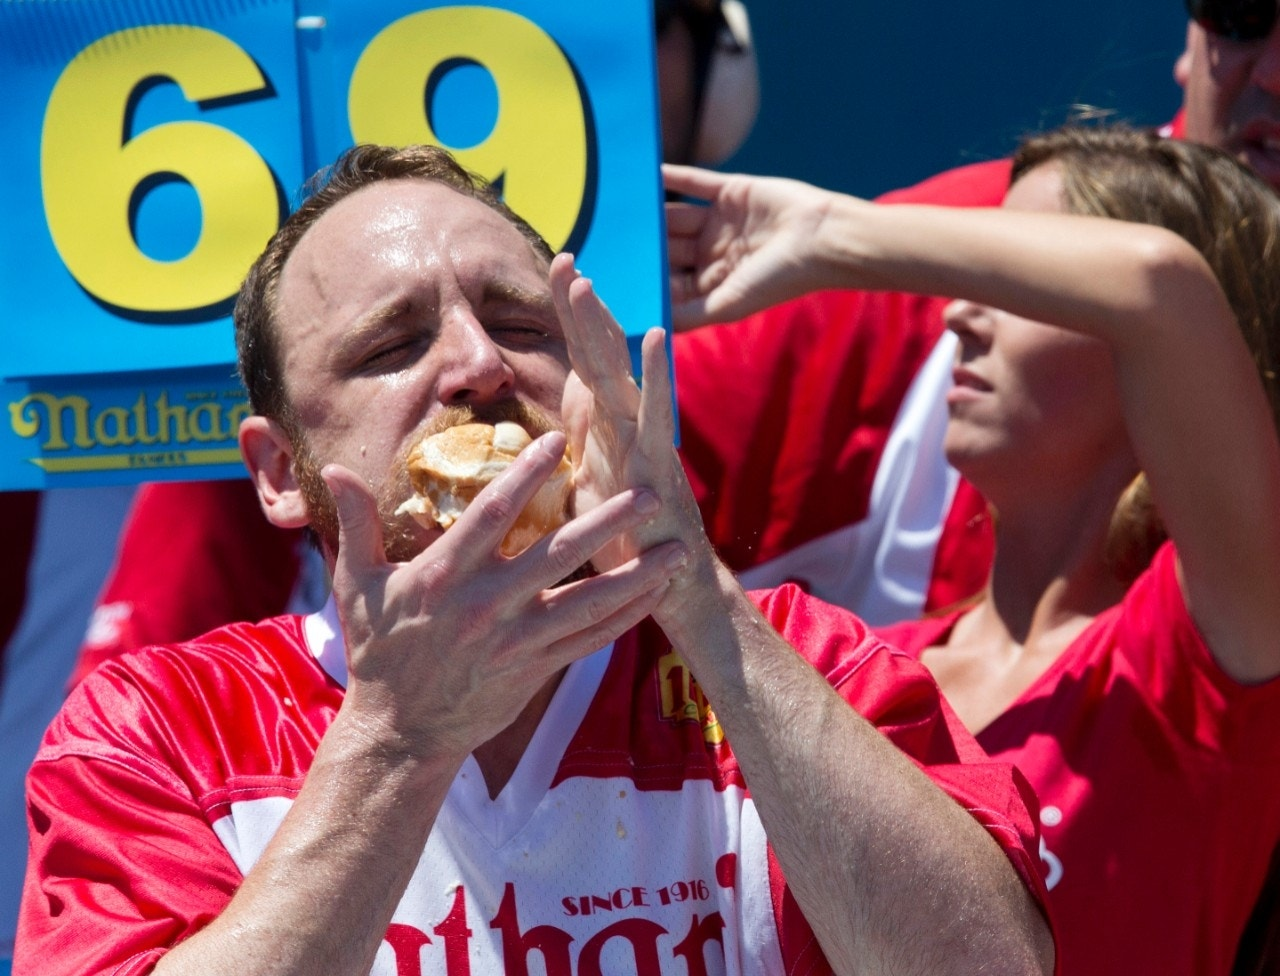 Joey Chestnut wins back crown at Coney Island hot dog eating contest | Fox News